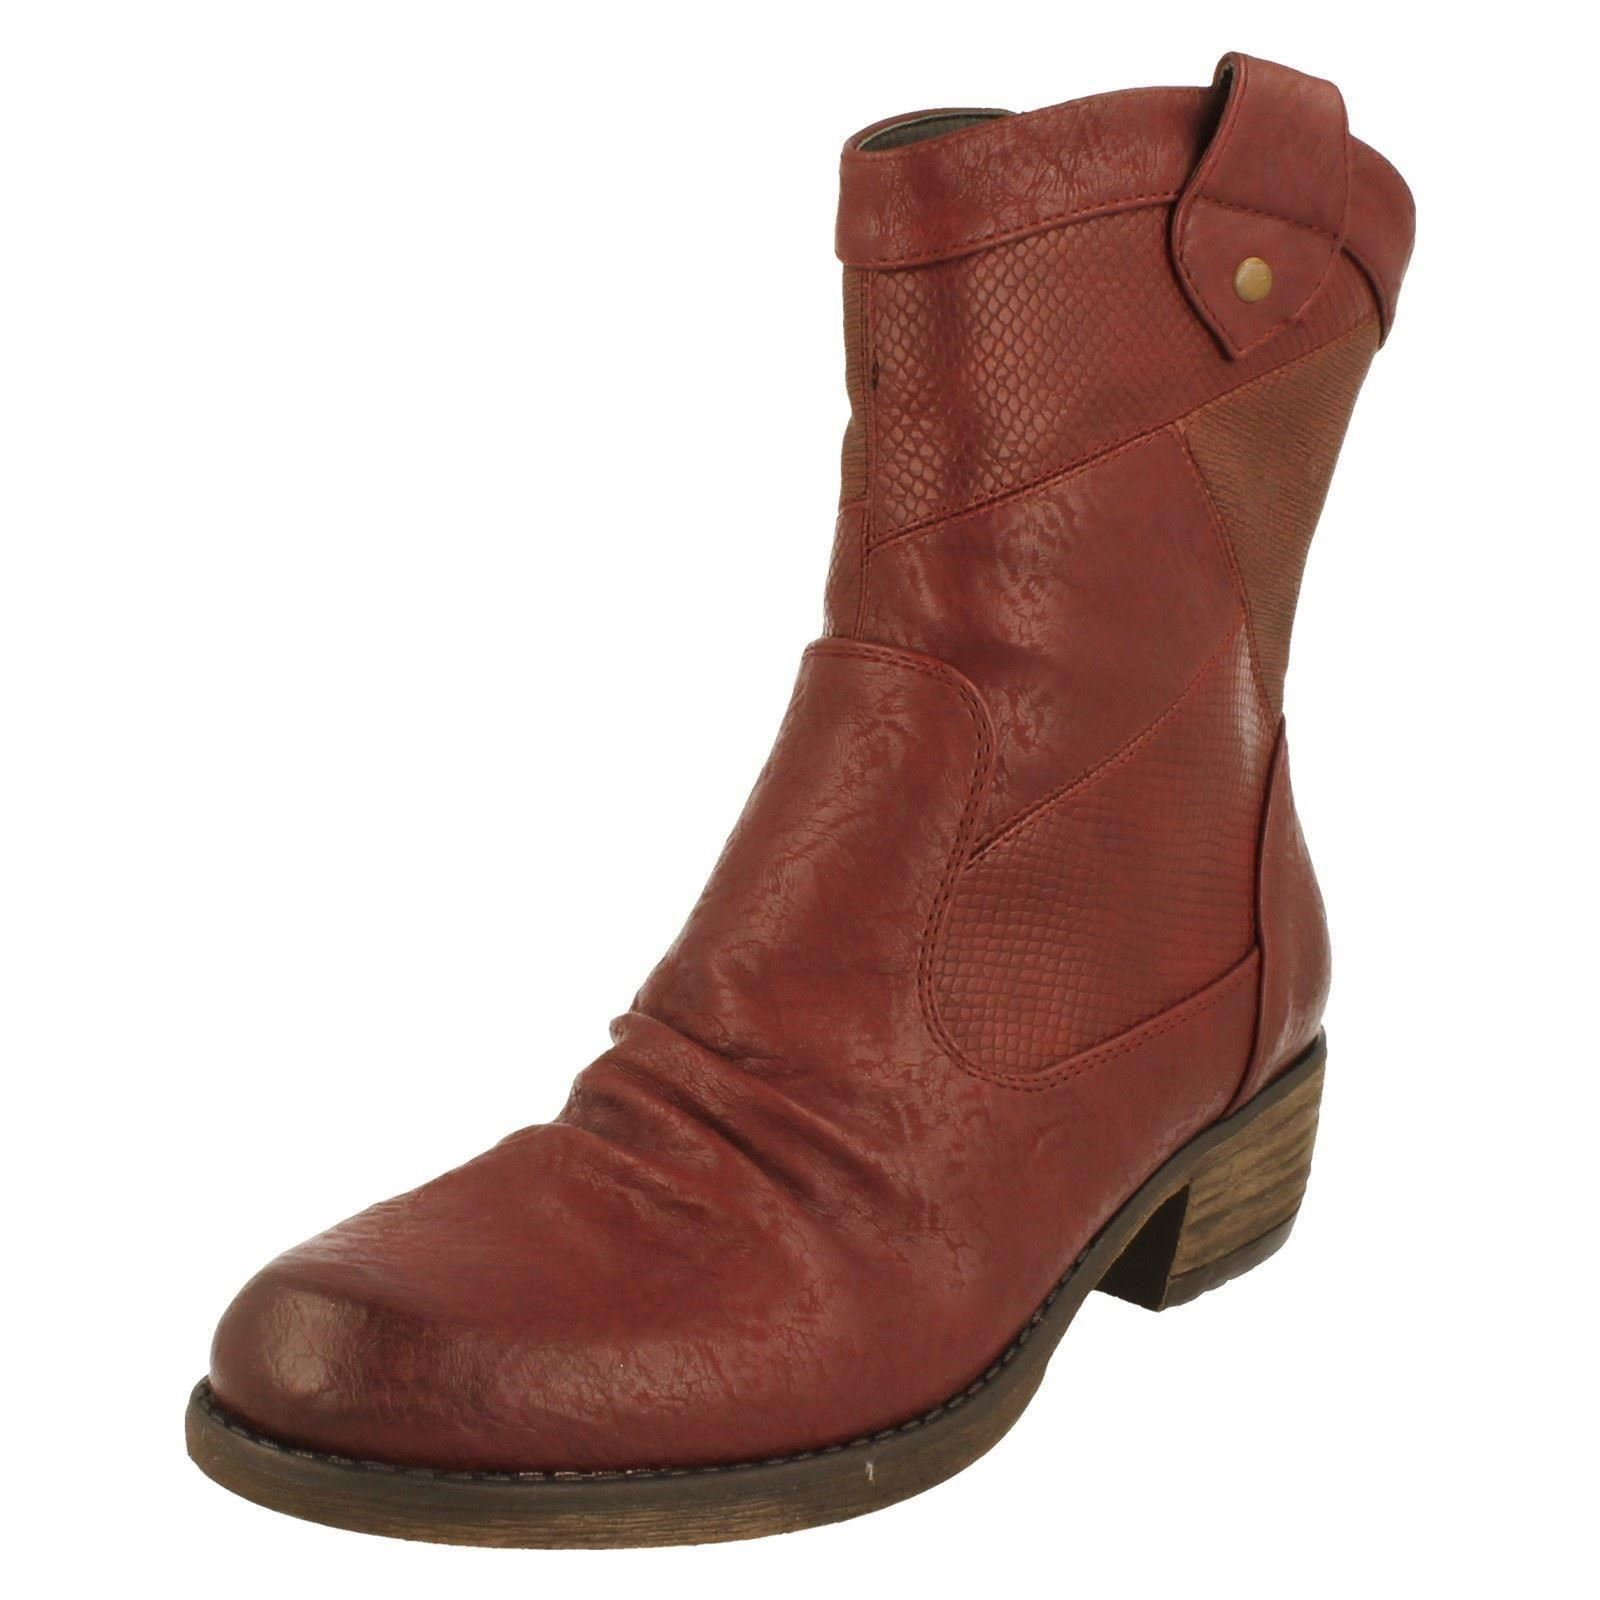 Man/Woman Man/Woman Man/Woman Ladies Rieker Boots 93164-W Elegant appearance Win the praise of customers professional design 352e72